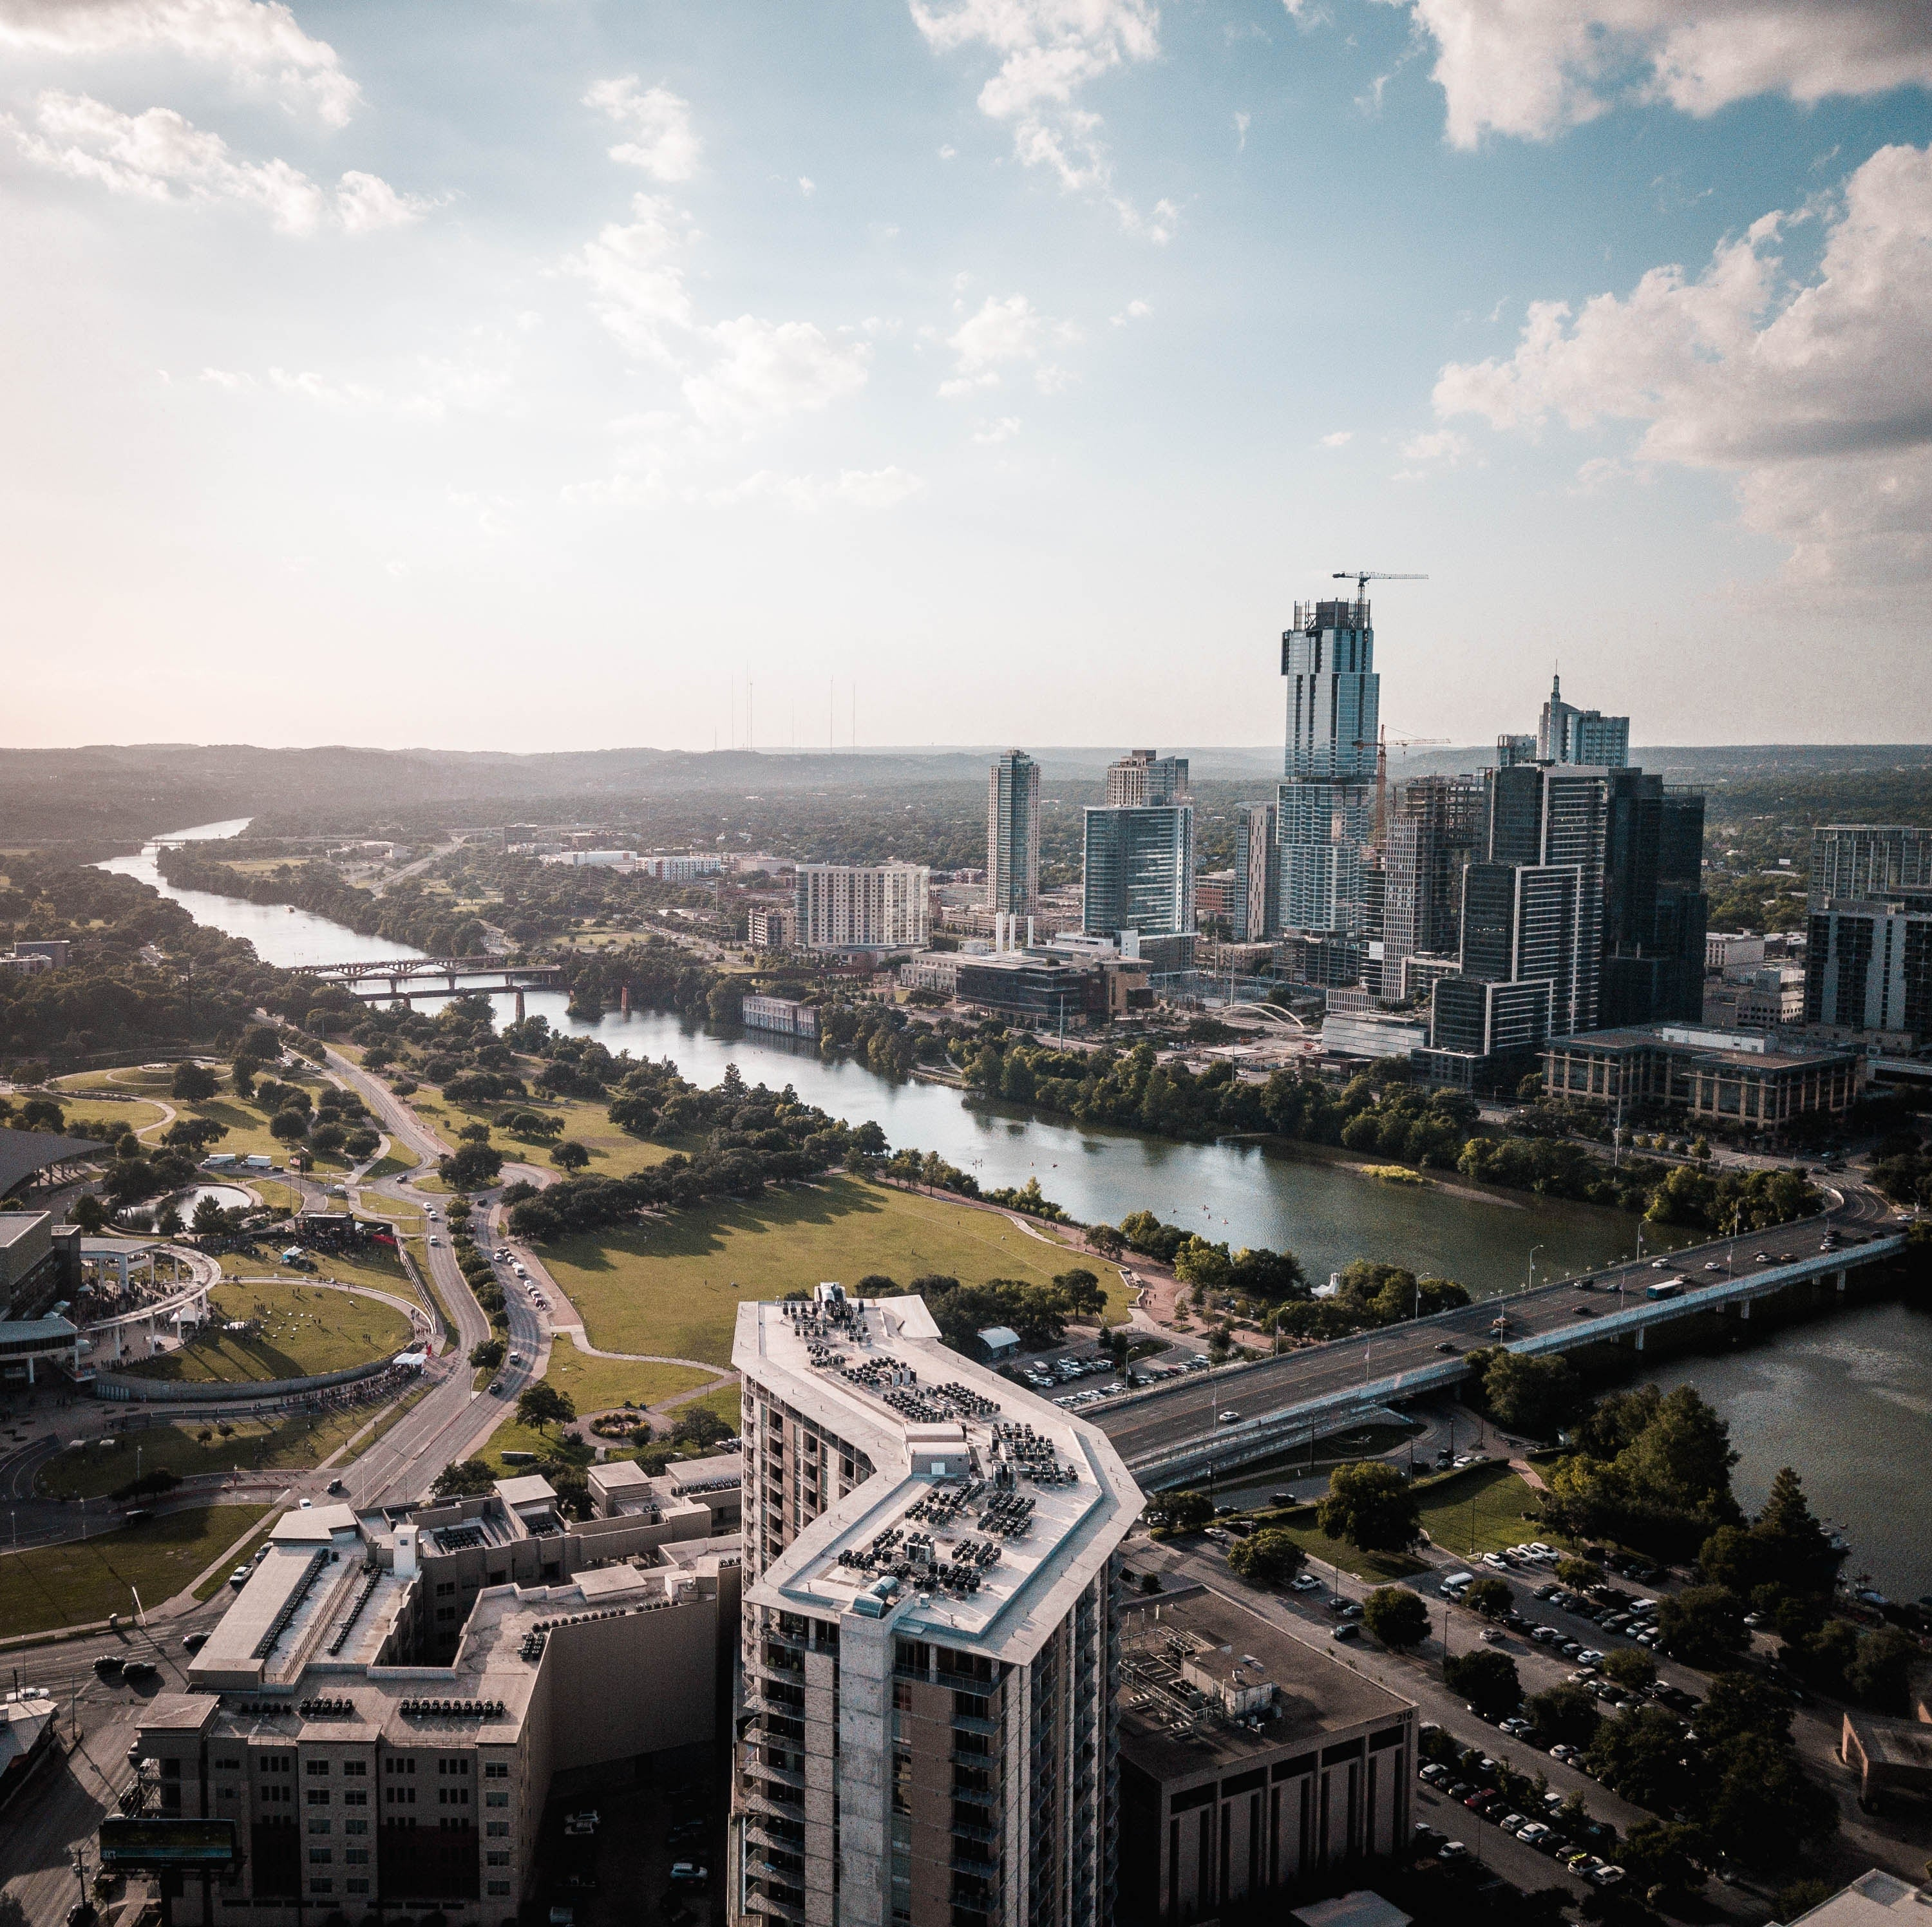 Austin_photo_by_JeremyBanks_01